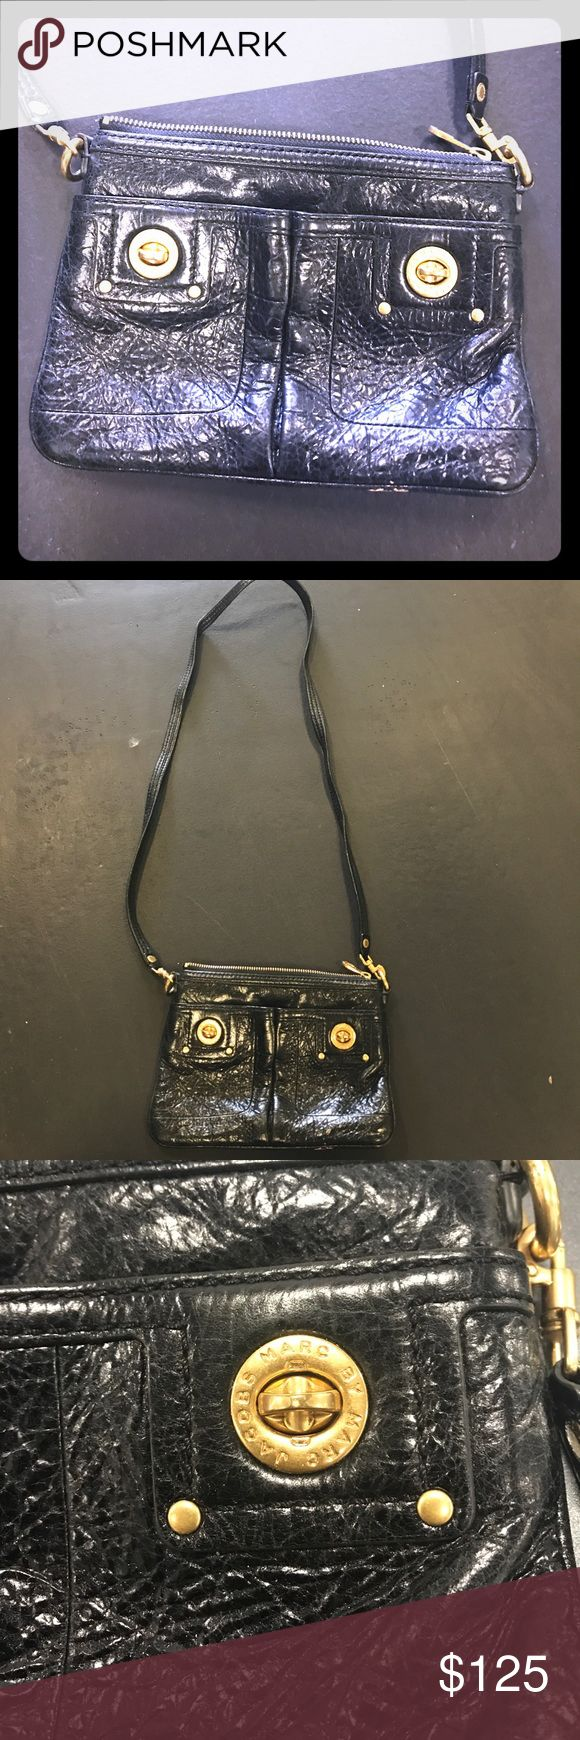 Vintage Marc Jacobs crossbody Amazing vintage Marc Jacobs black crossbody purse Marc Jacobs Bags Crossbody Bags